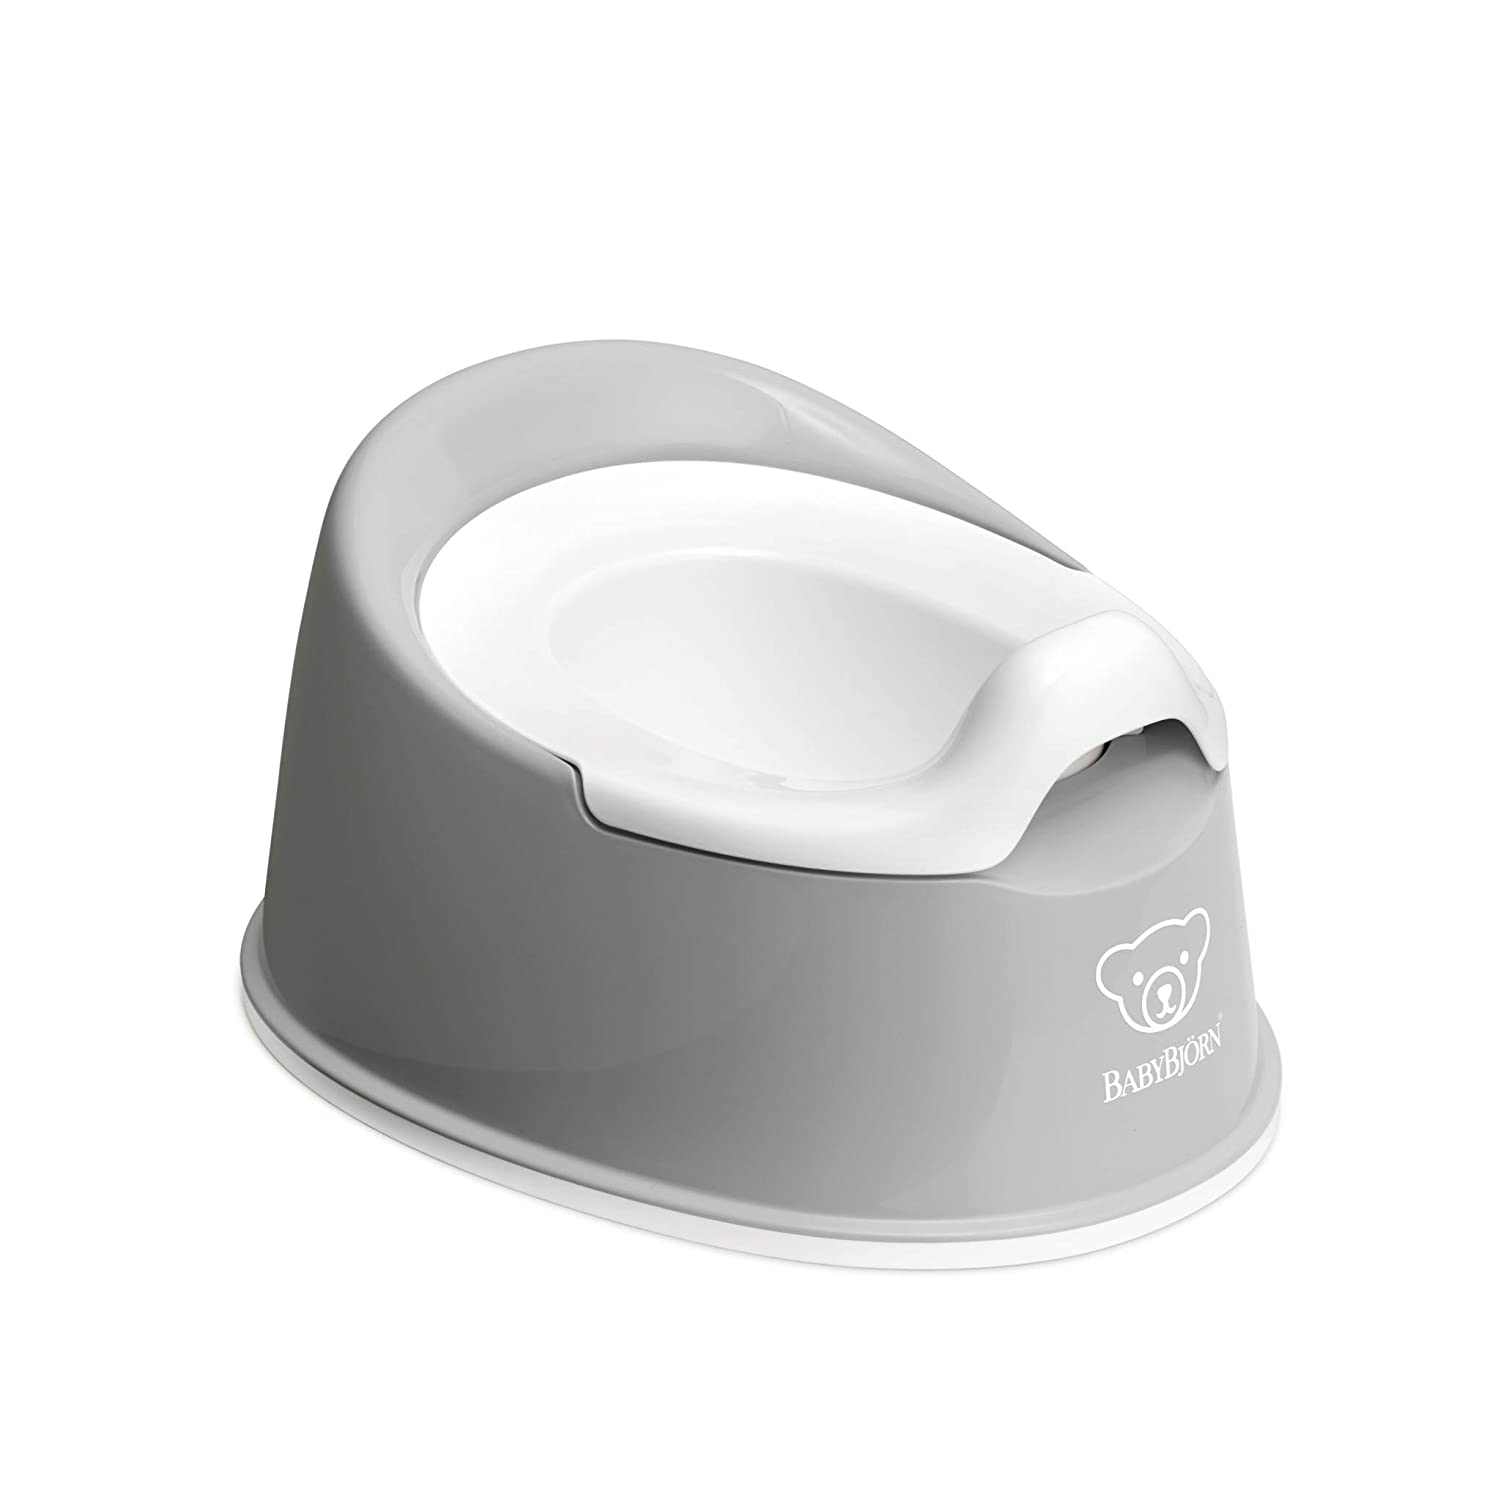 BABYBJÖRN Smart Potty, Gray/White